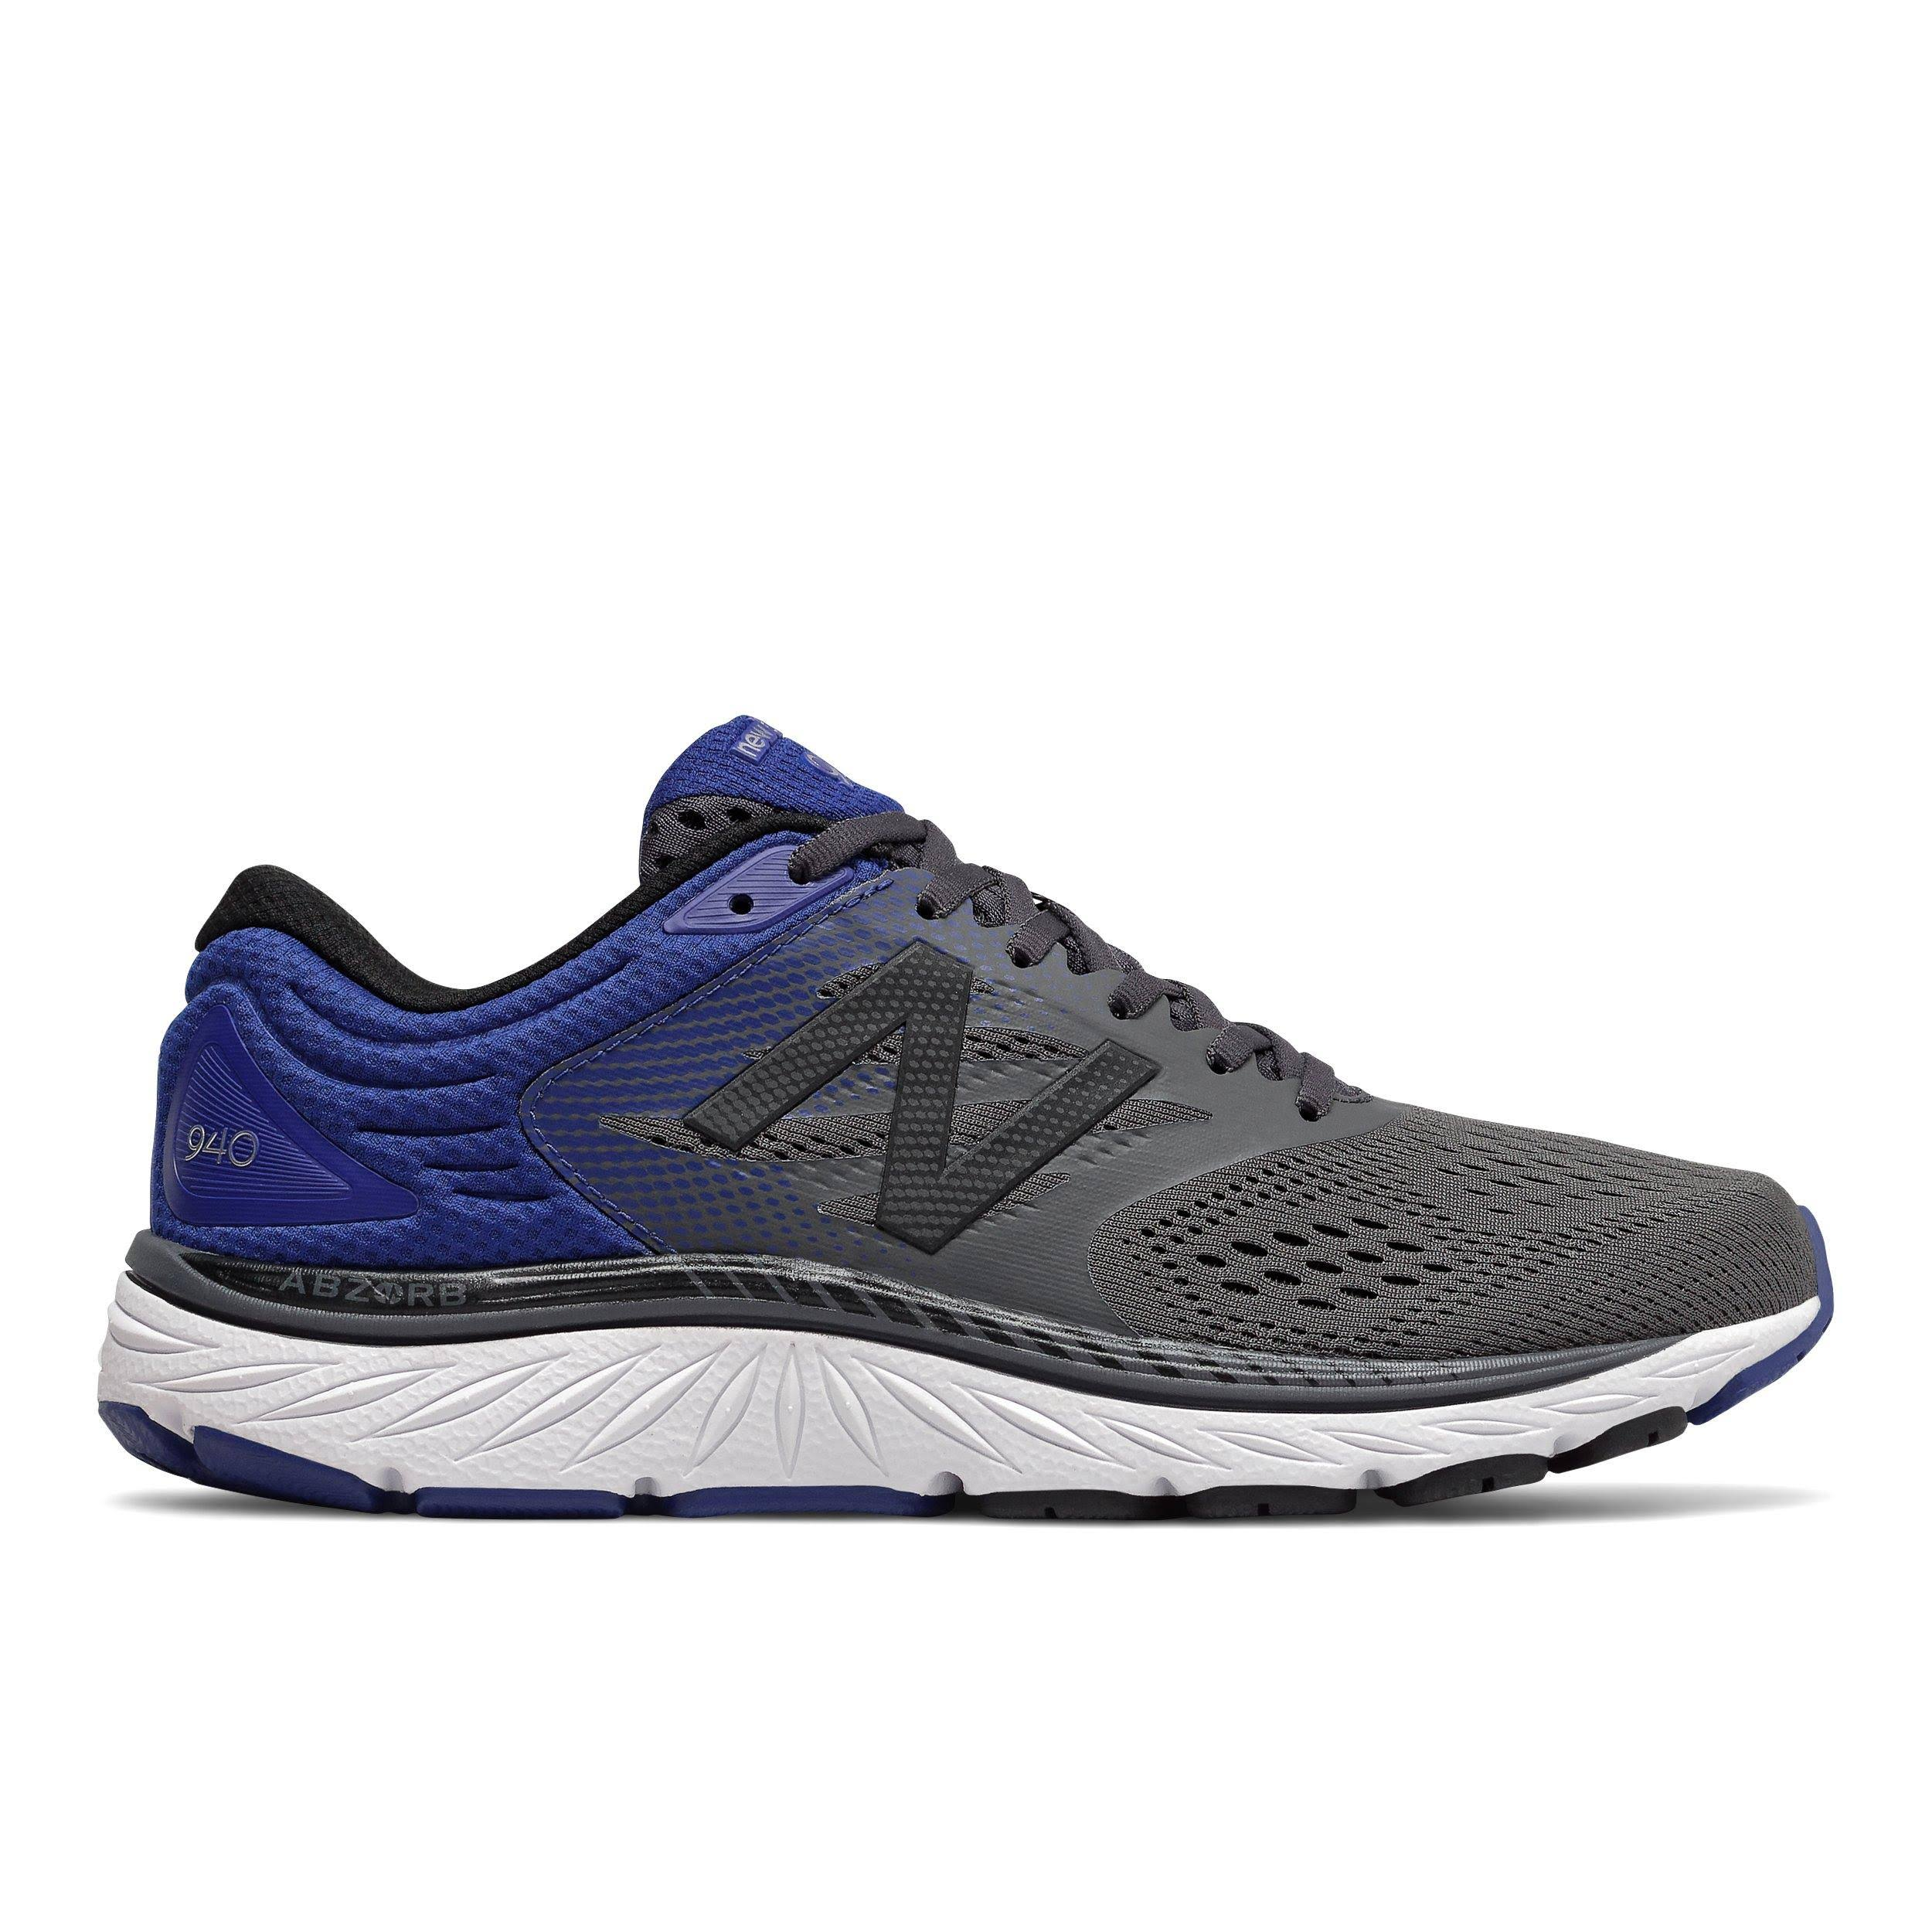 New Balance 940v4 Men's Running Shoes Magnet/Marine Blue : 12.5 4E - Extra Wide